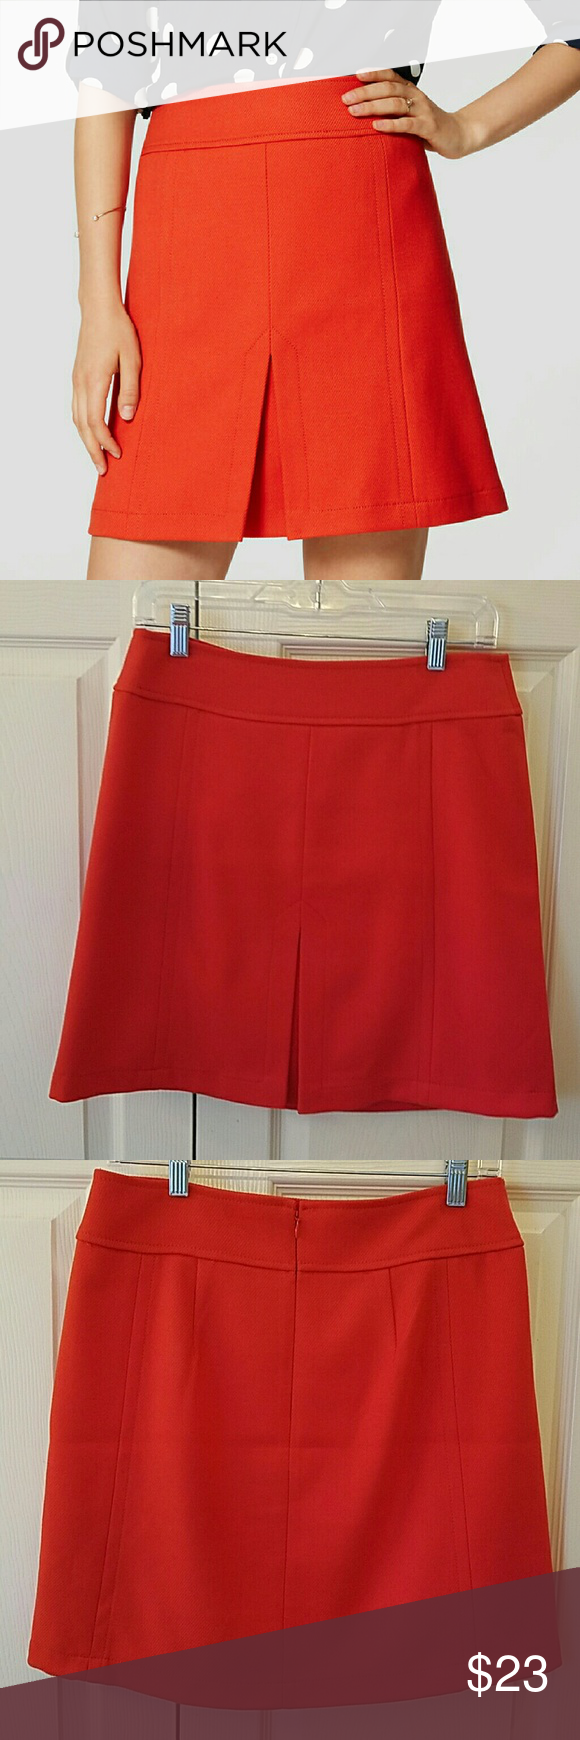 "LOFT Front Pleat Skirt EUC Super cute, orange red skirt with front pleat.  Fully lined. Zips in back.  64% polyester, 34% viscose, 2% spandex.  Length is 19"".  Waist is 31"".  I have worn this twice.  Like new.  No flaws. LOFT Skirts Midi"